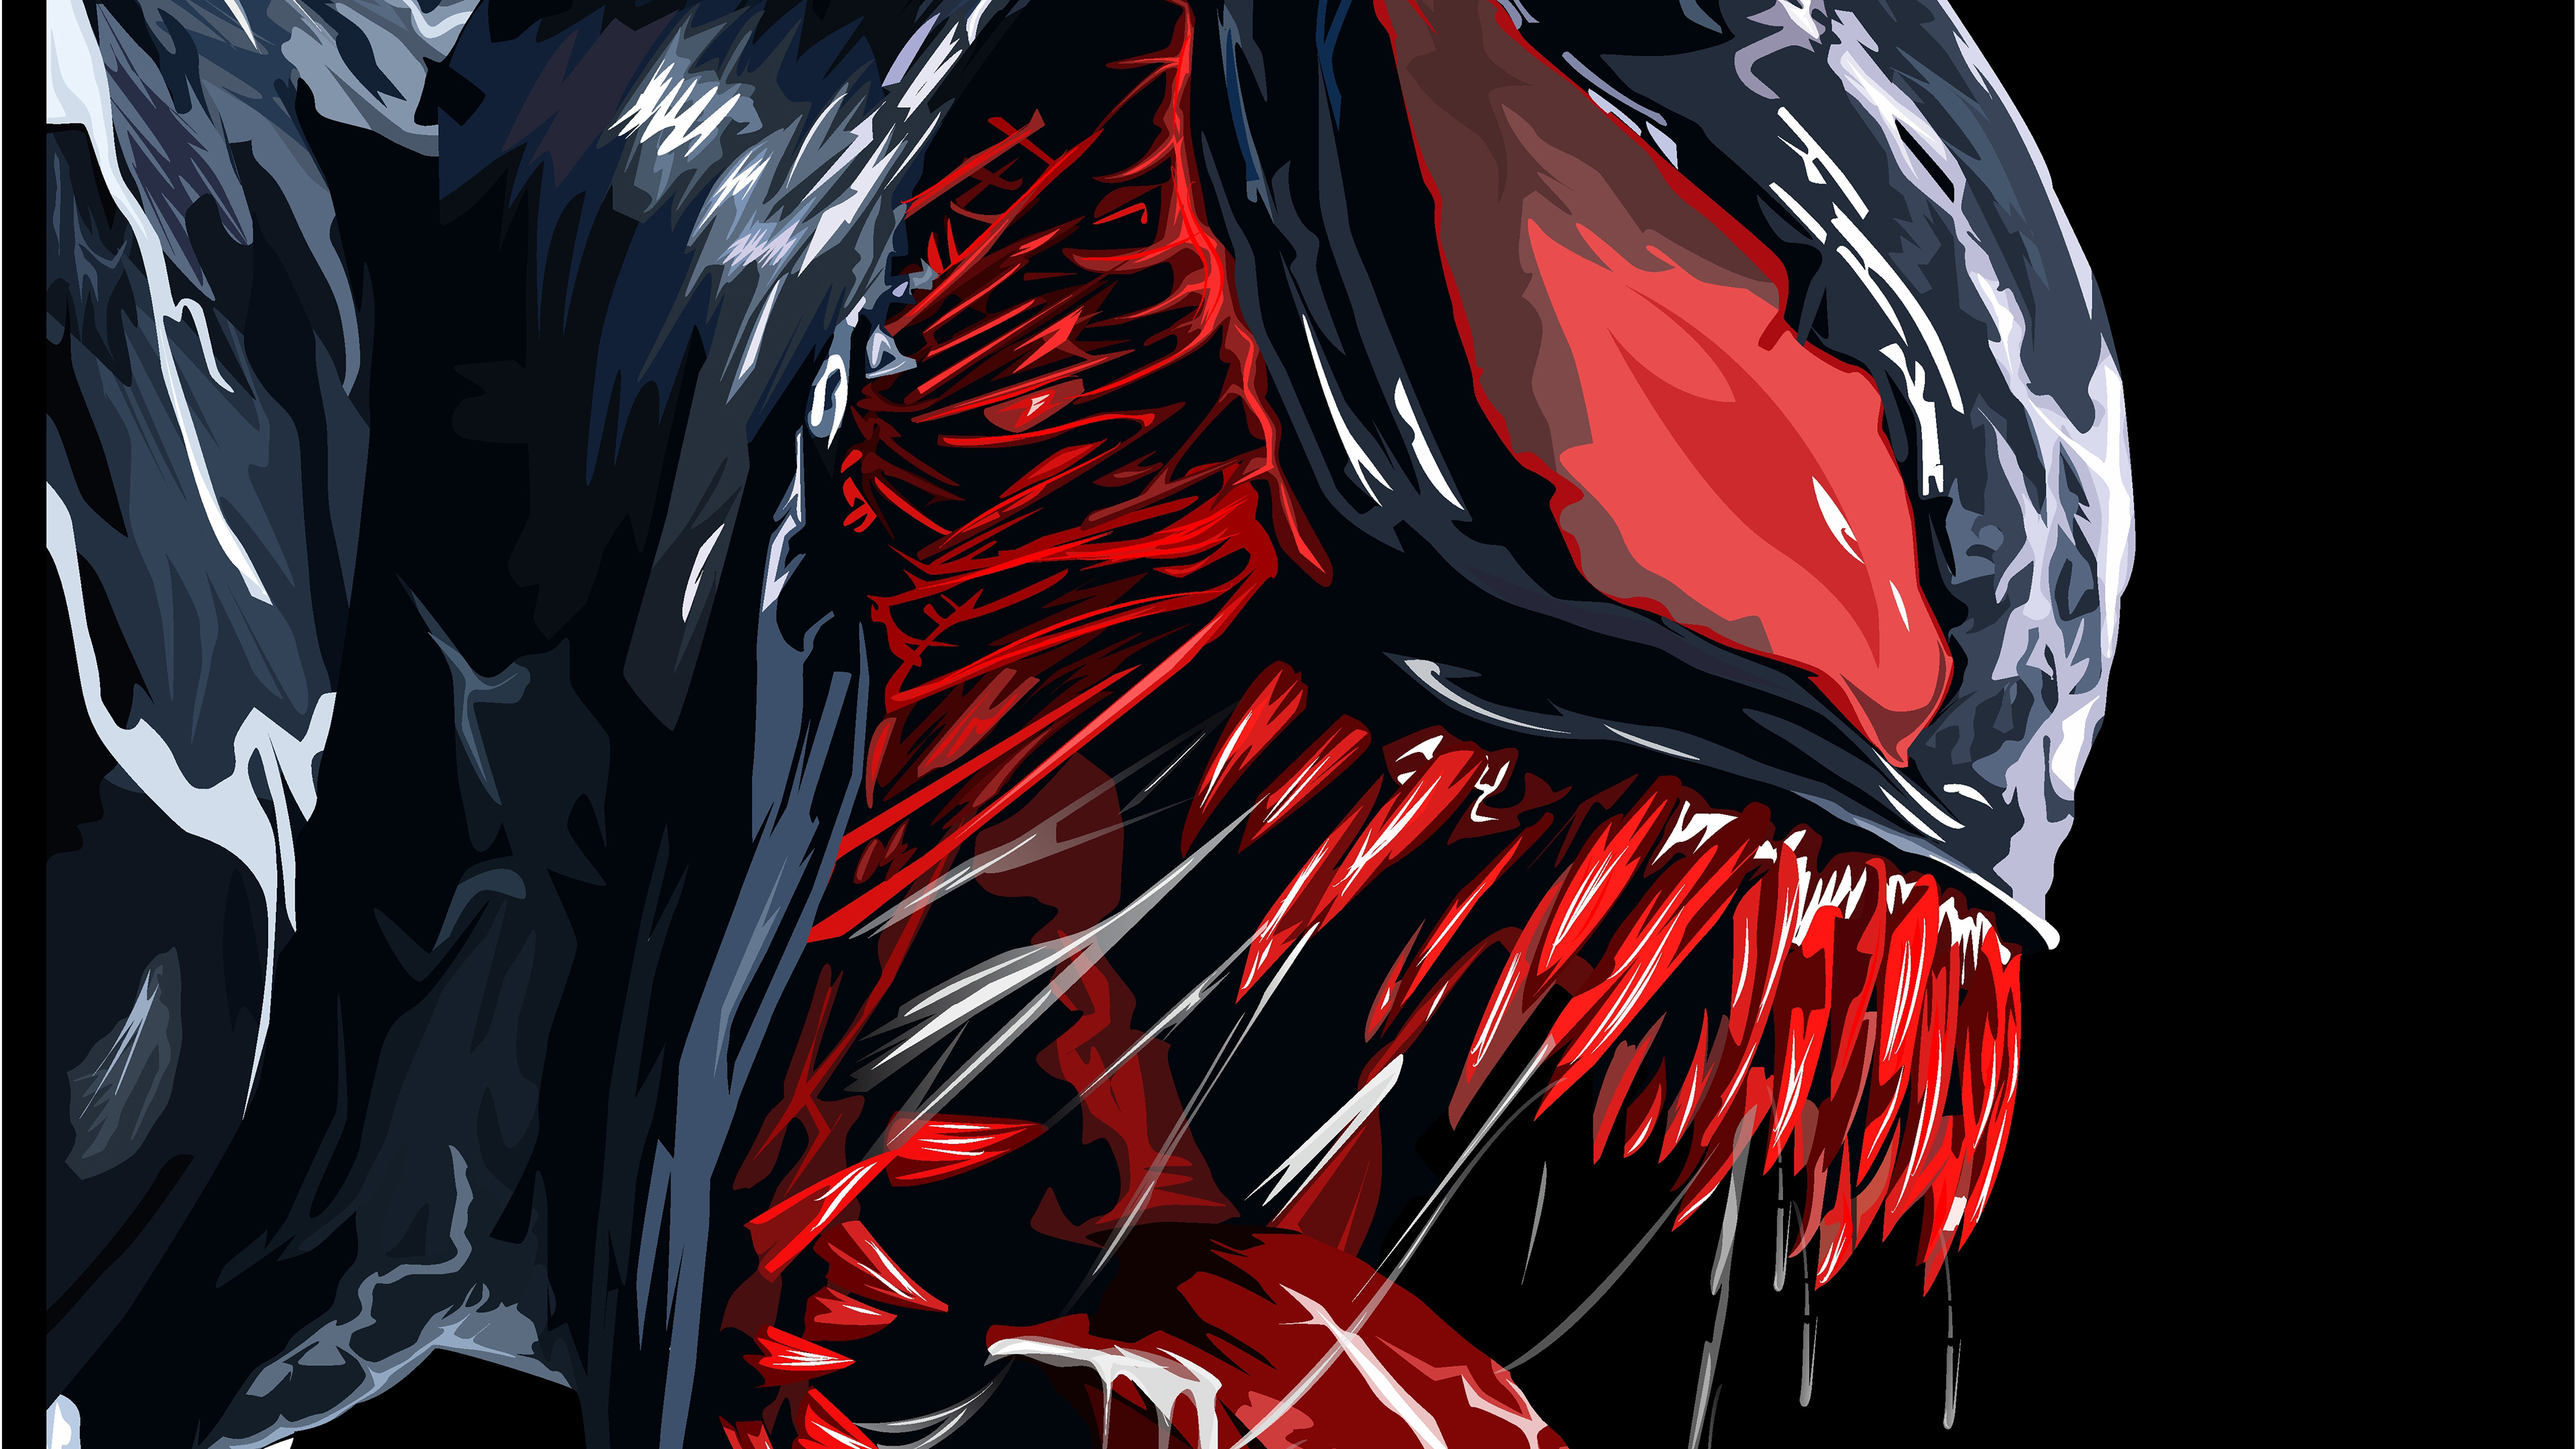 Red venom artwork 4k hd superheroes 4k wallpapers - Venom hd wallpaper android ...